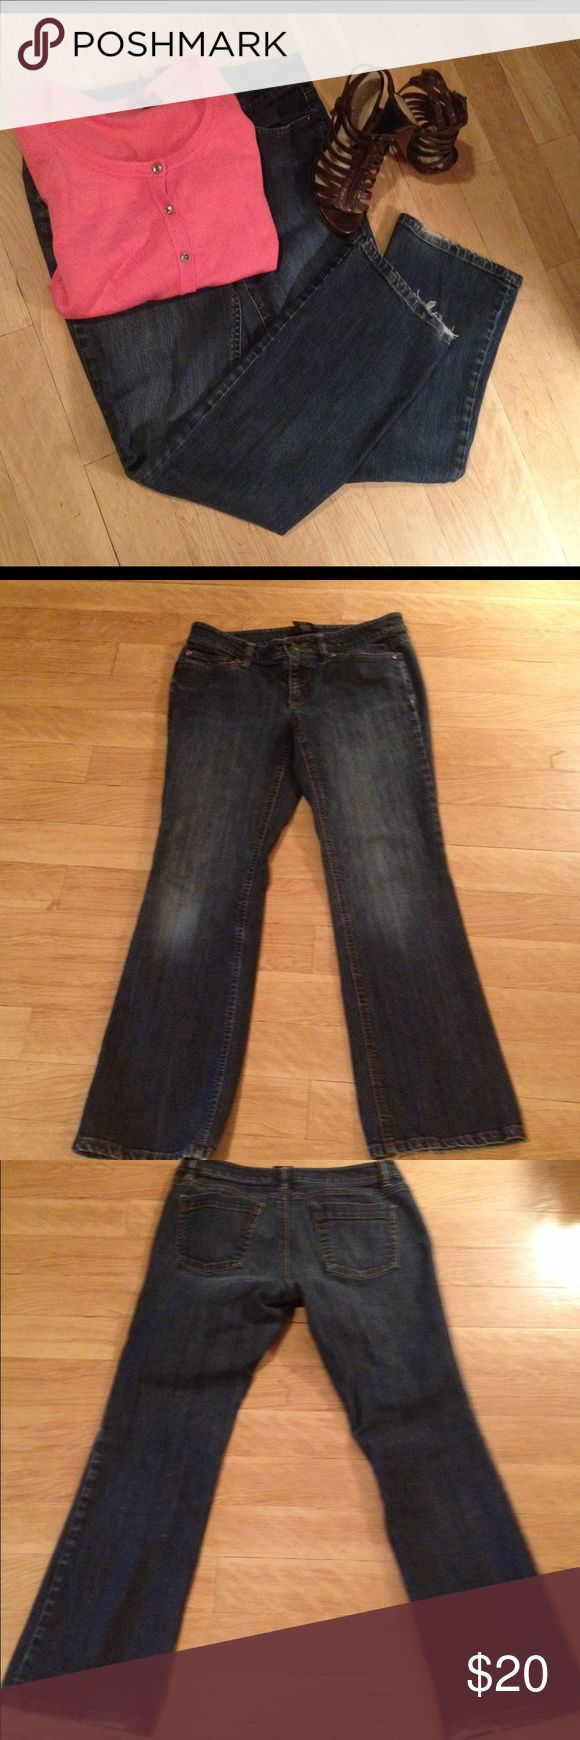 """Awesome Ann Taylor Curvy Jeans These jeans are distressed on knees and frayed at the bottom giving them the look of classic comfort and distressed style. You'll love the curvy fit and the feel of the jeans. 29""""inseam 16""""waist flat 7""""rise Ann Taylor Jeans Boot Cut"""